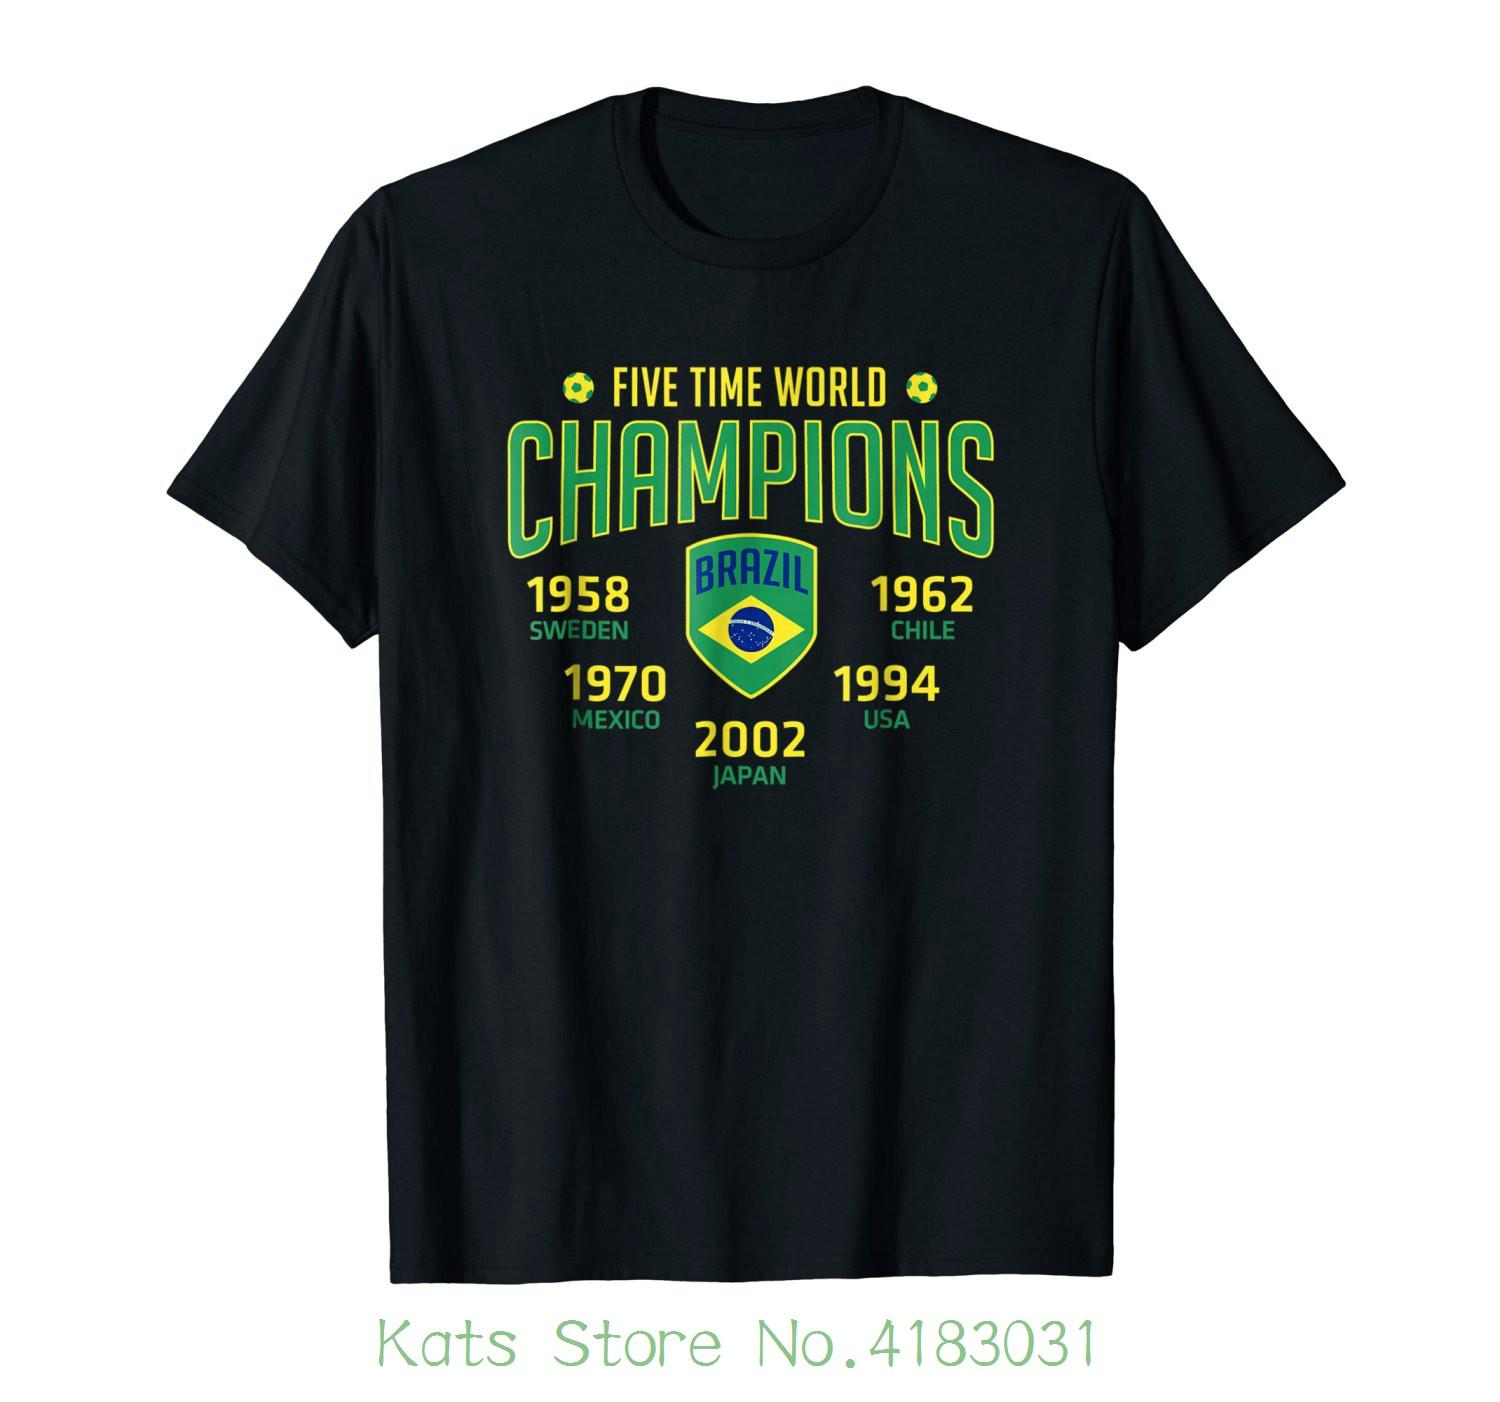 a030248487022 Russia Bra Brazil World Footballer Cup 2018 Discount Wholesales T Shirt  Harajuku Cool Tshirt Homme Random T Shirts Poker T Shirts From  Cooldaystore